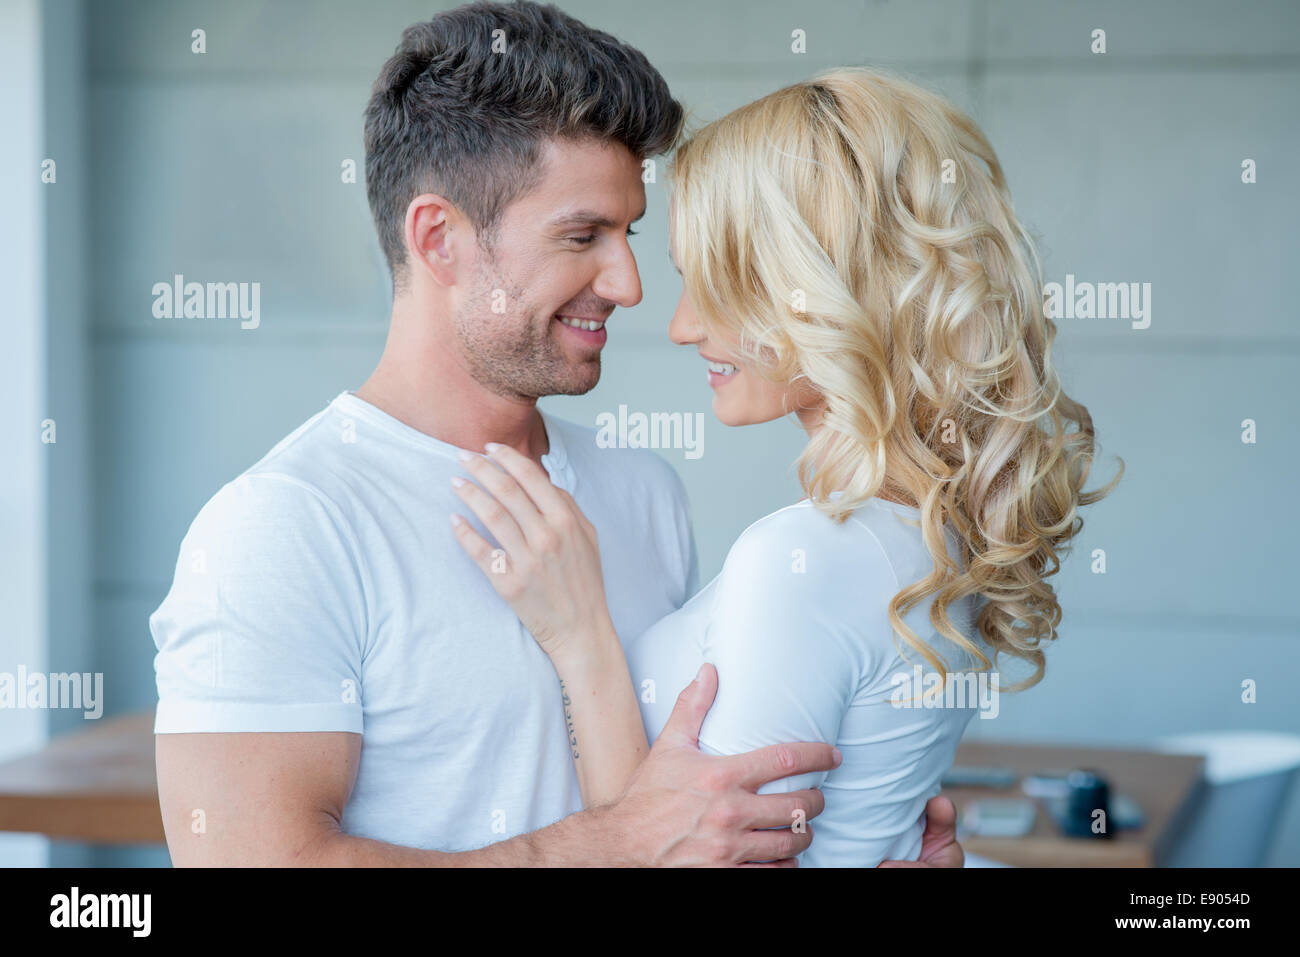 Loving couple looking into each others eyes - Stock Image